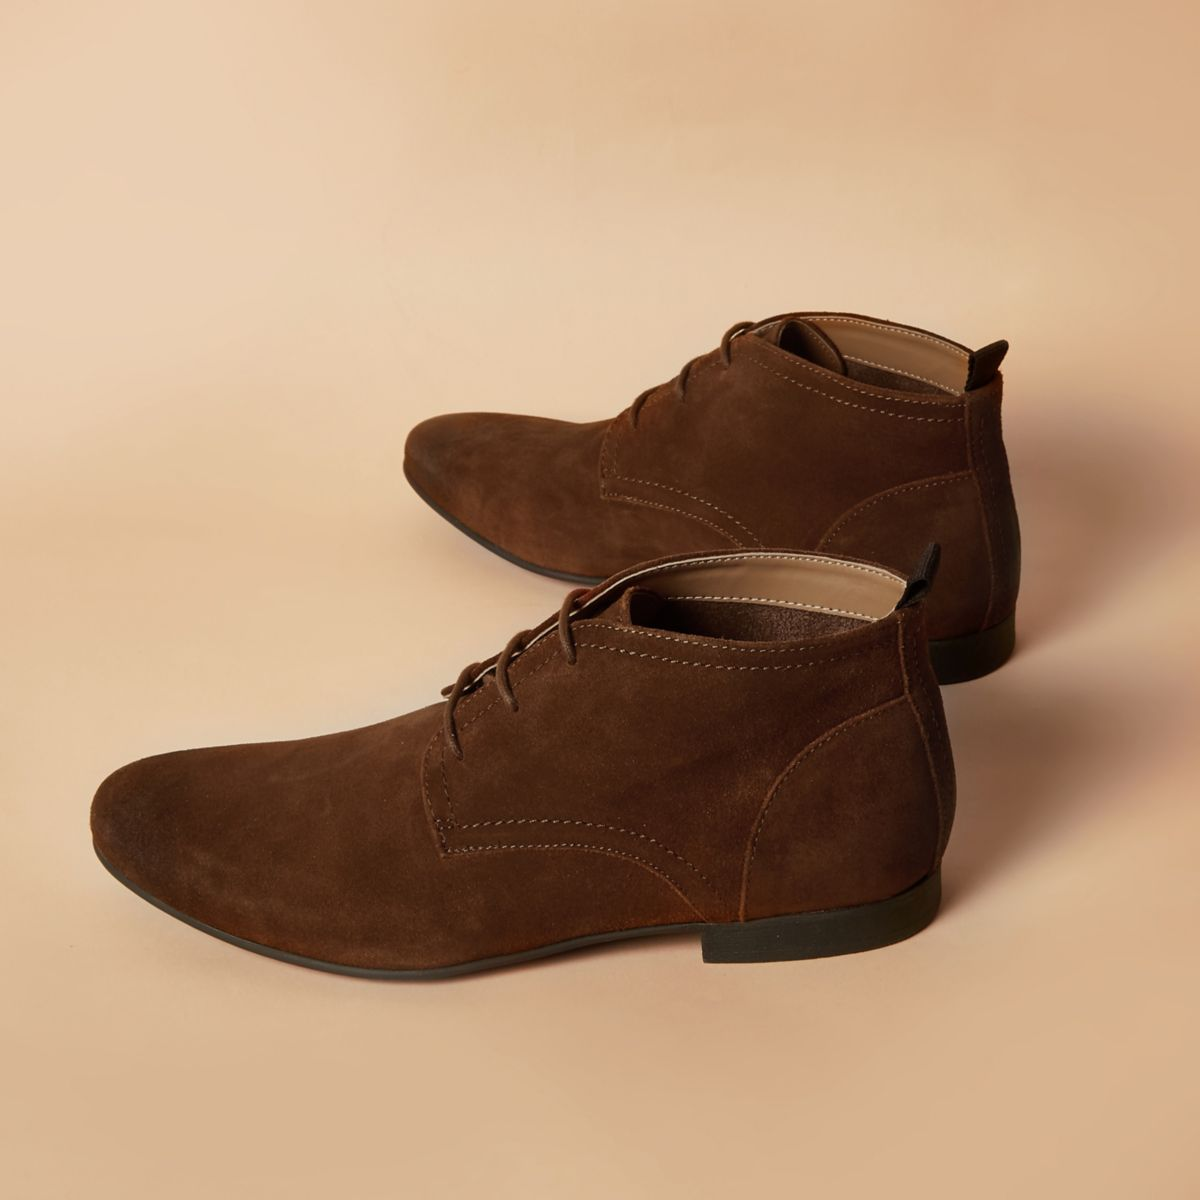 Tan brown suede chukka boots